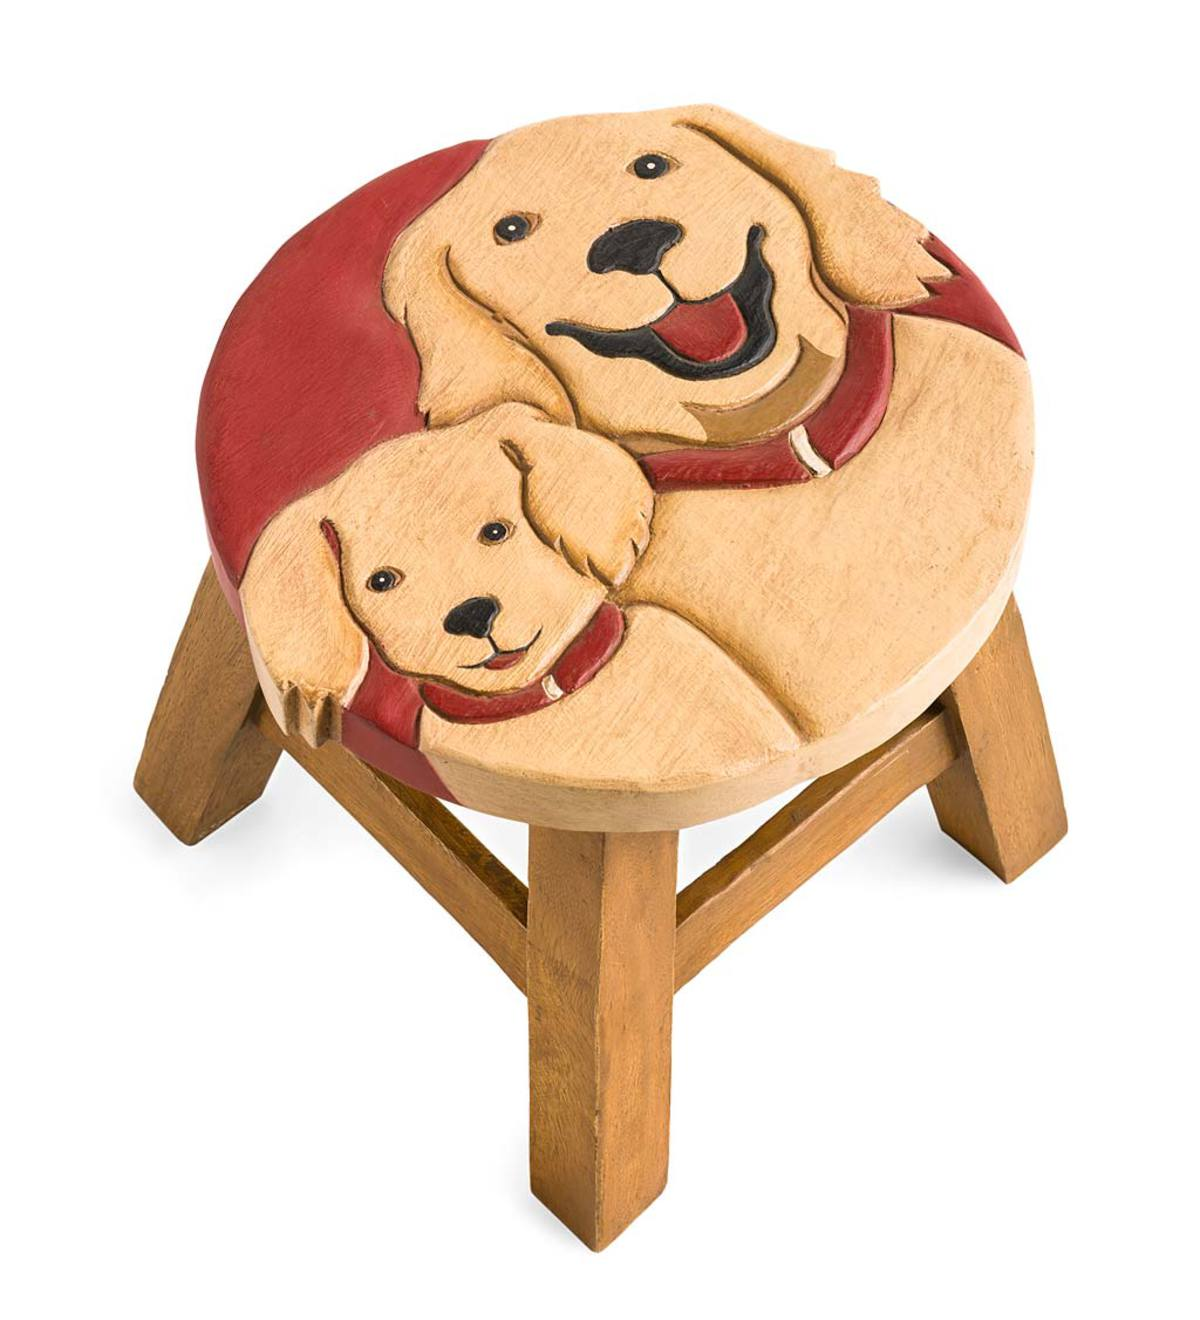 Hand-Carved Wood Golden Retrievers Footstool